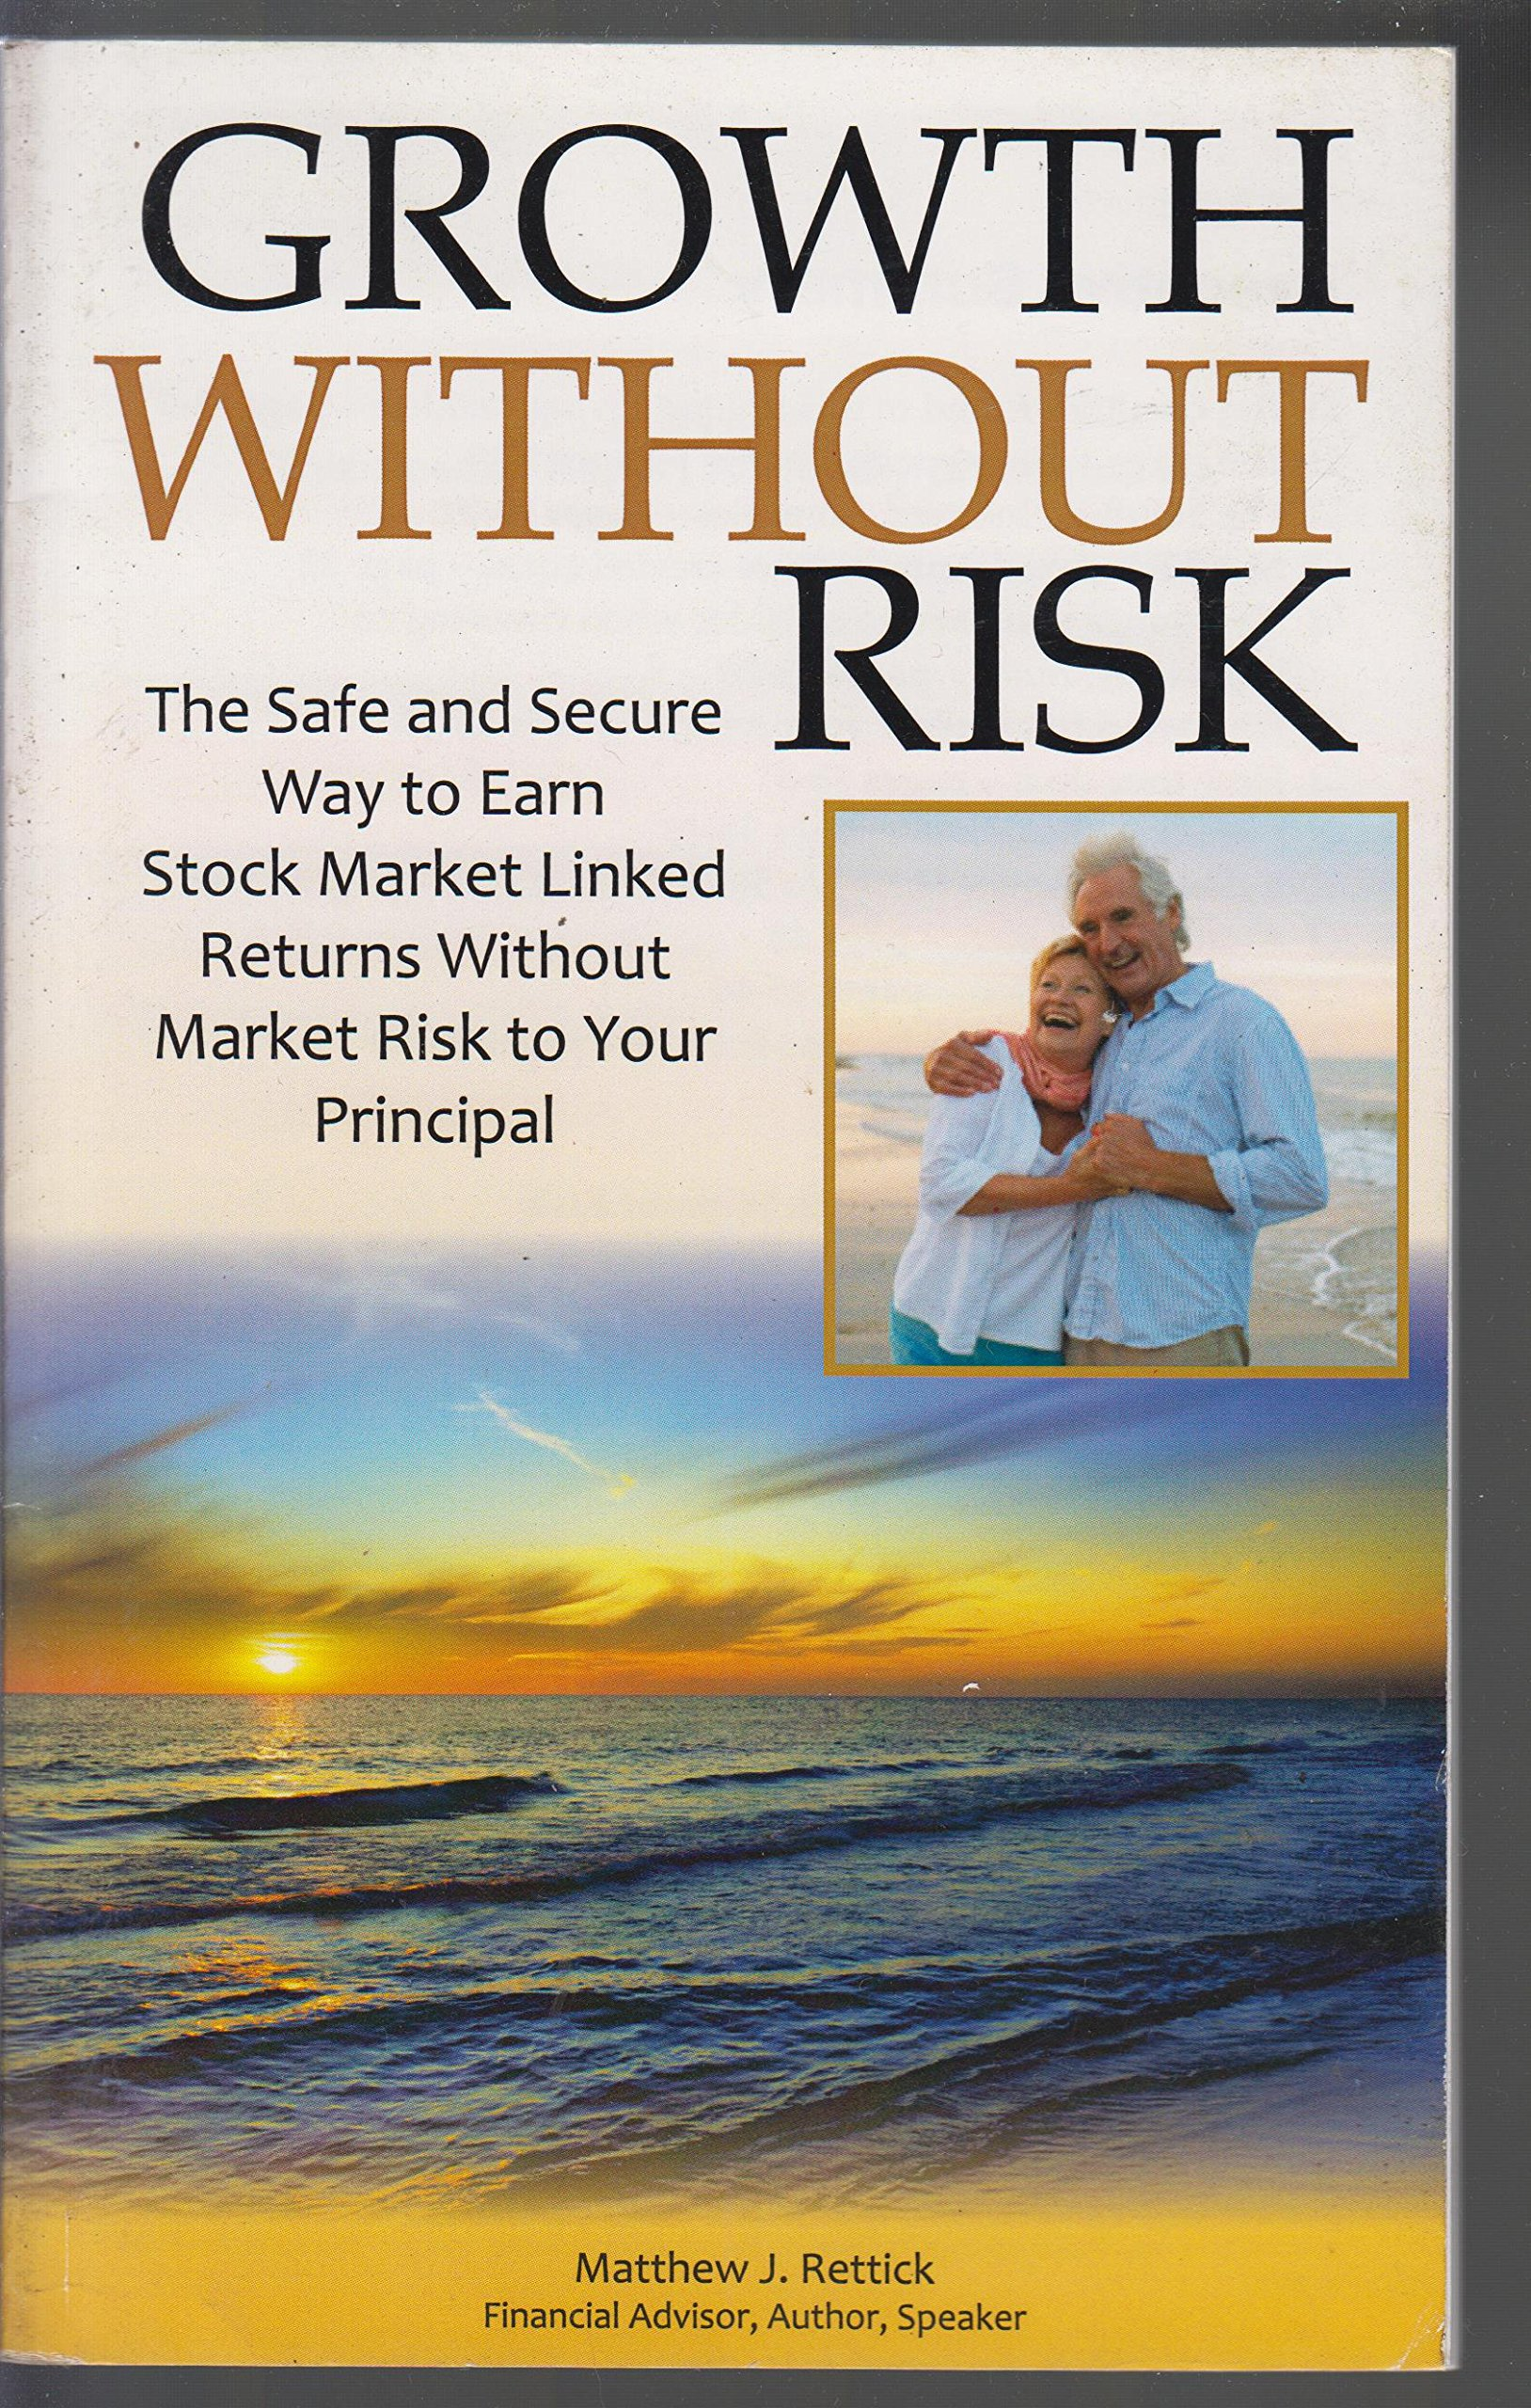 Growth Without Risk: The Safe and Secure Way to Earn Stock